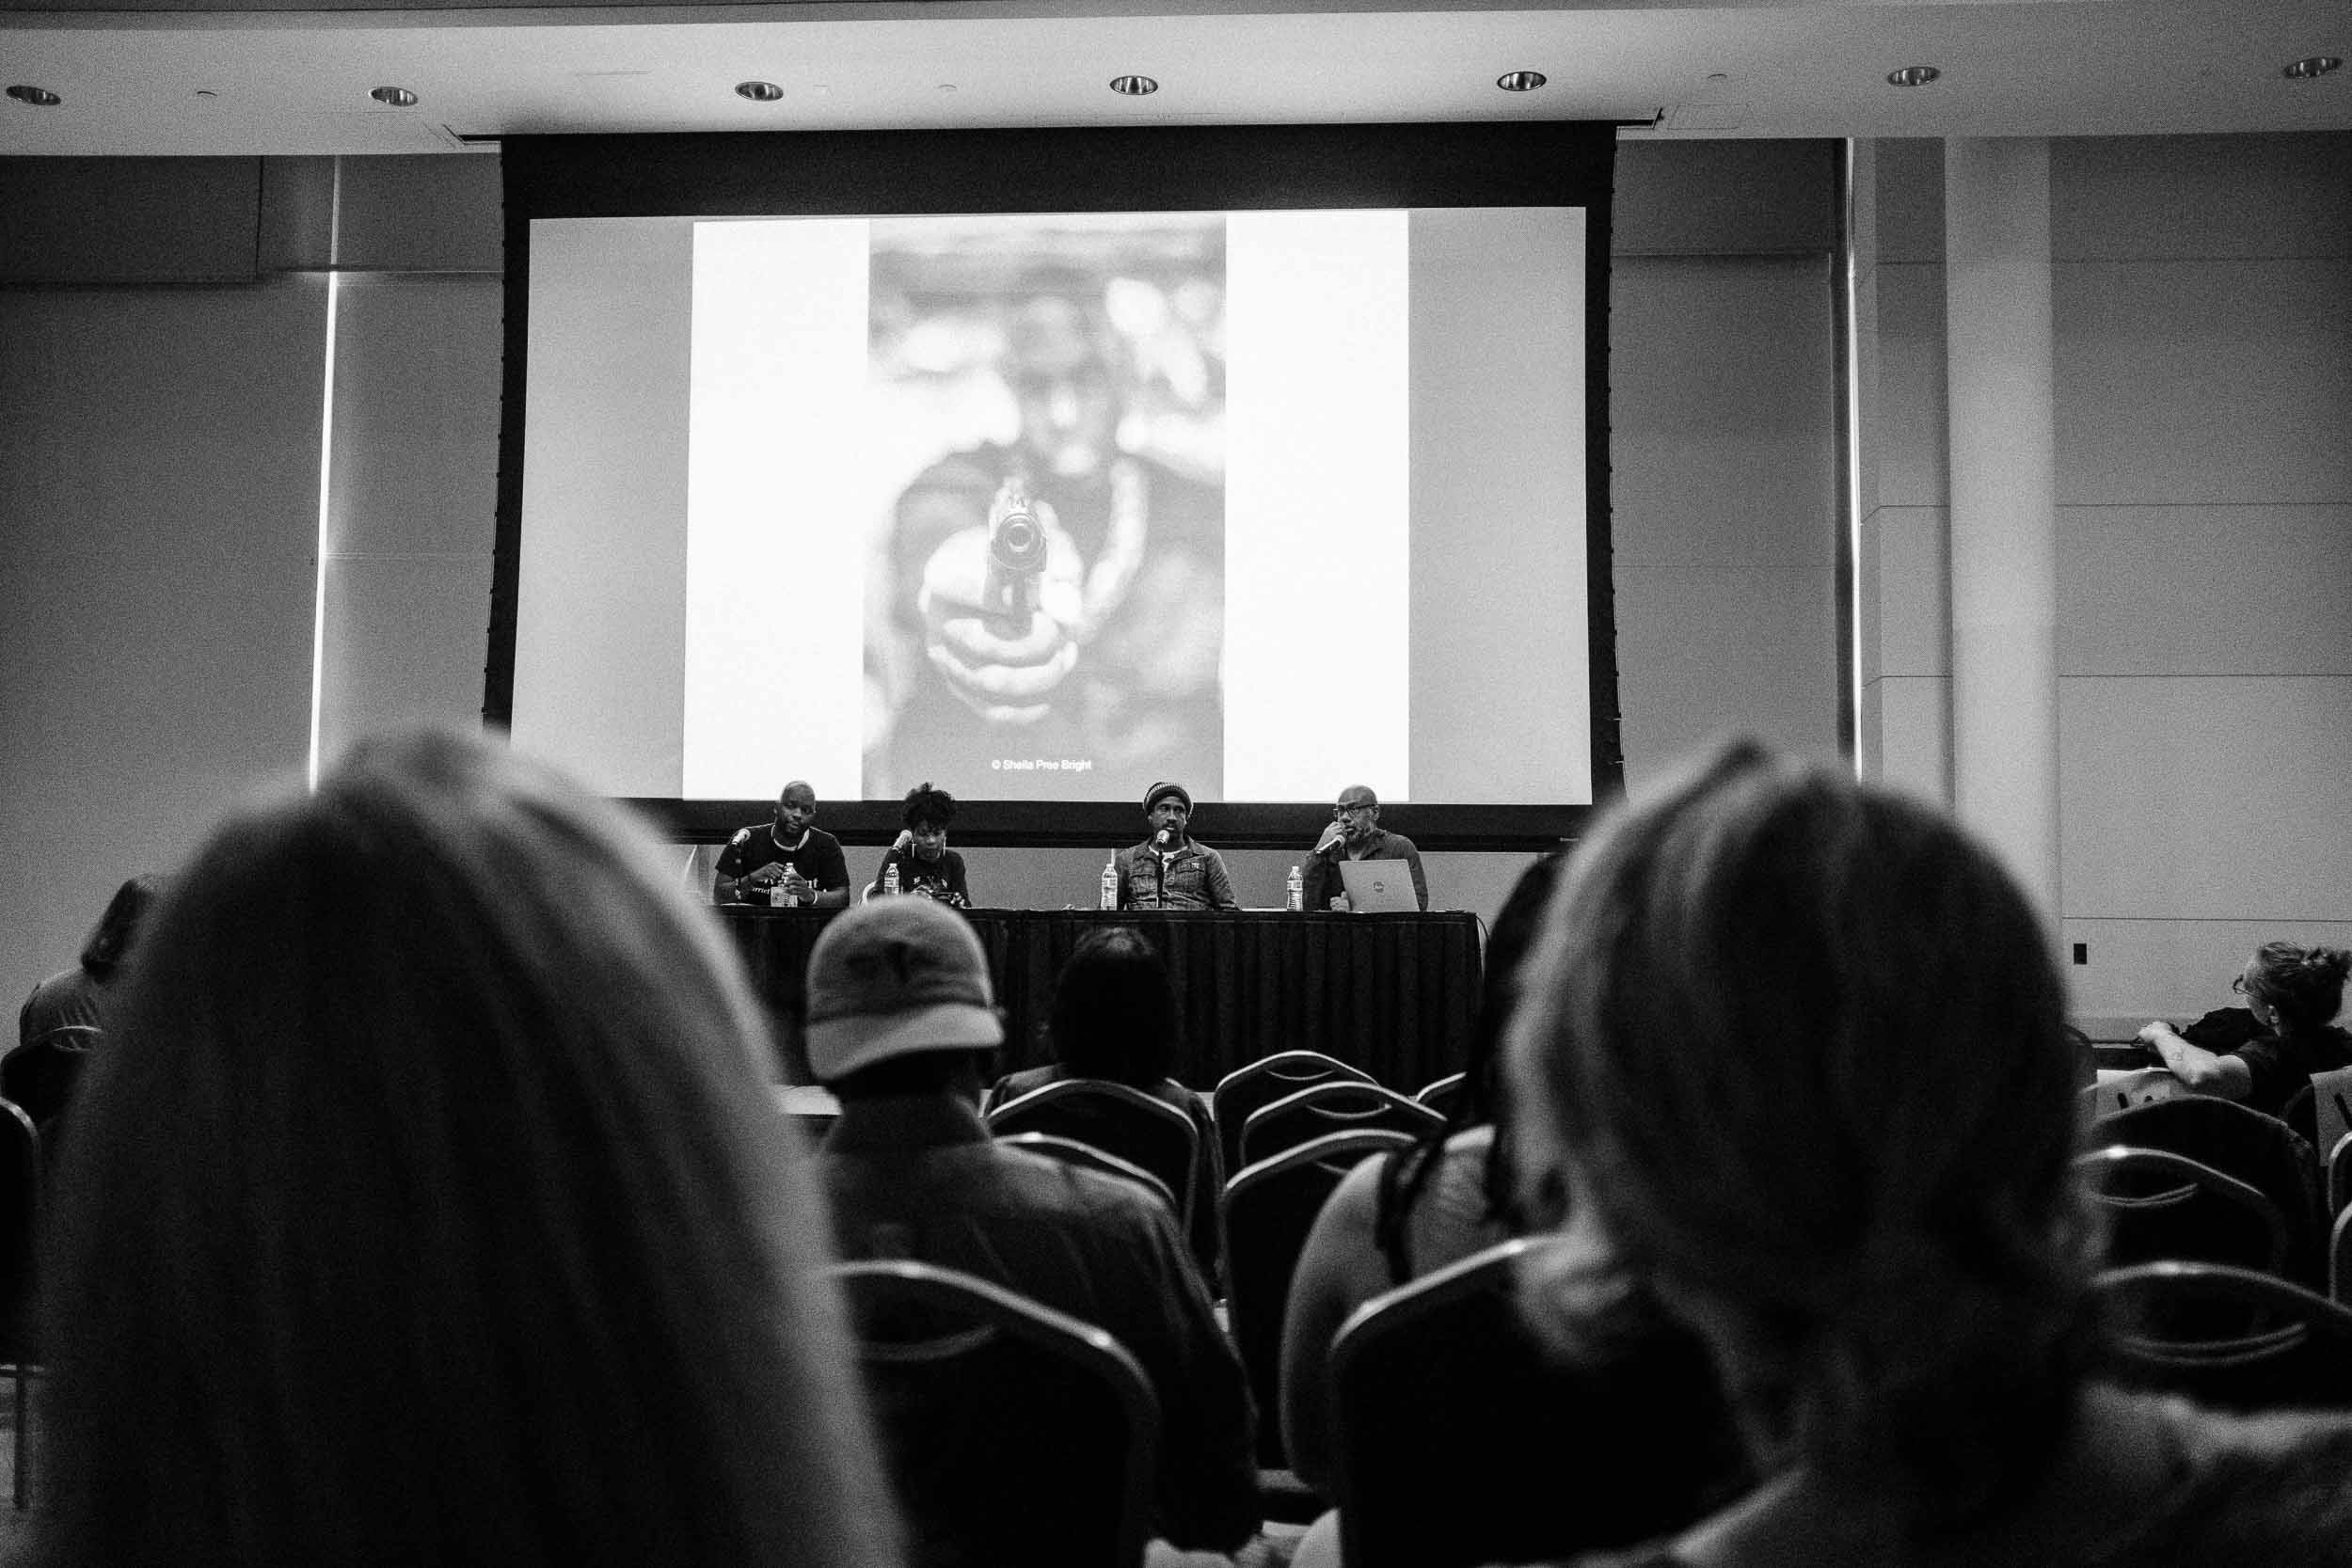 Ibarionex Perello moderates a panel on Mental Health - Behind and in front of the camera. Panelist included Ruddy Roye, Sheila Pree Bright and Michael McCoy.